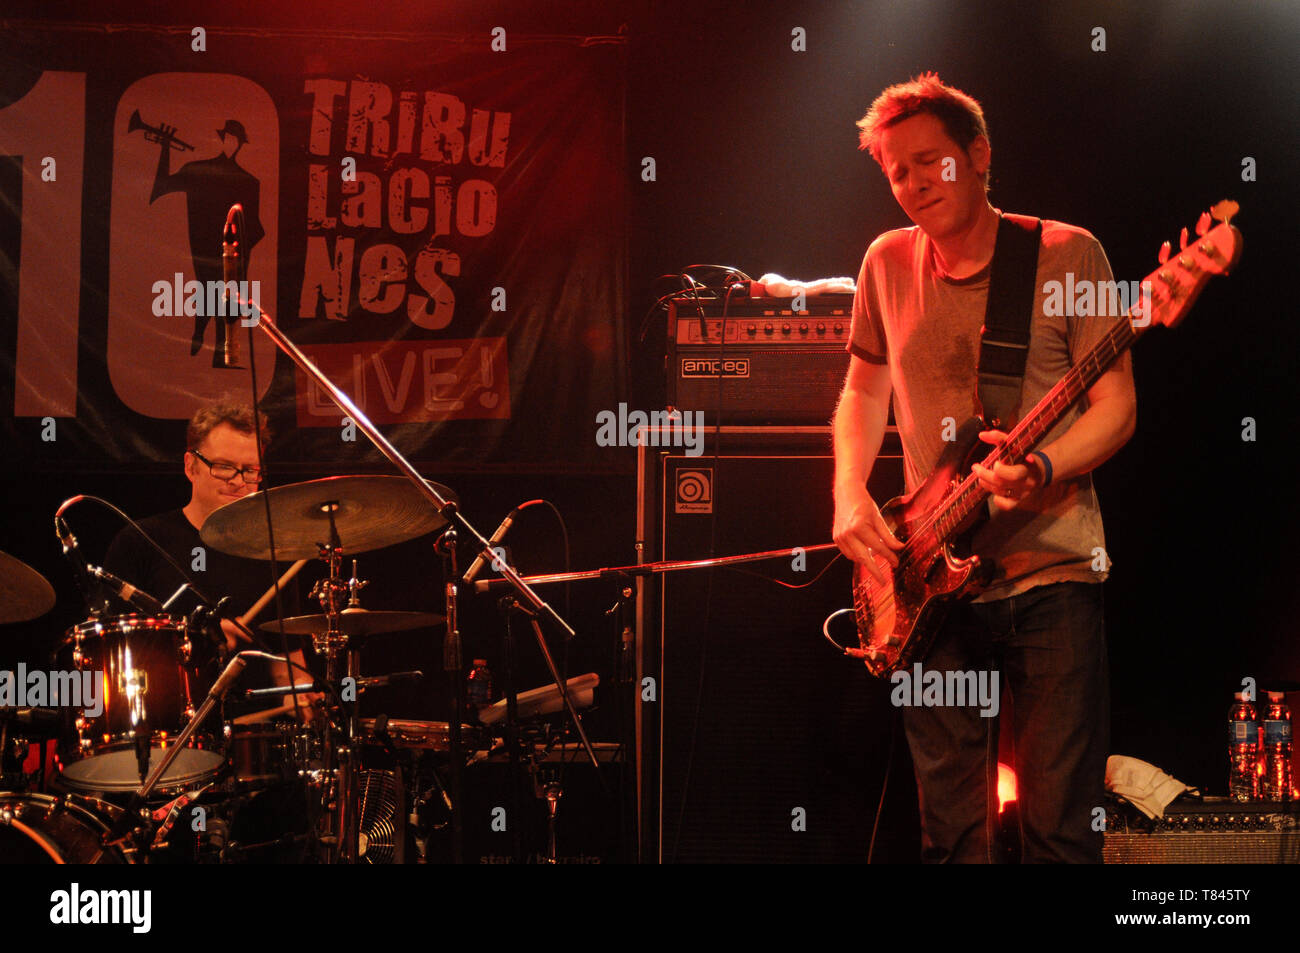 Robert Mercurio (bass) and Stanton Moore (drums), from Galactic - Stock Image